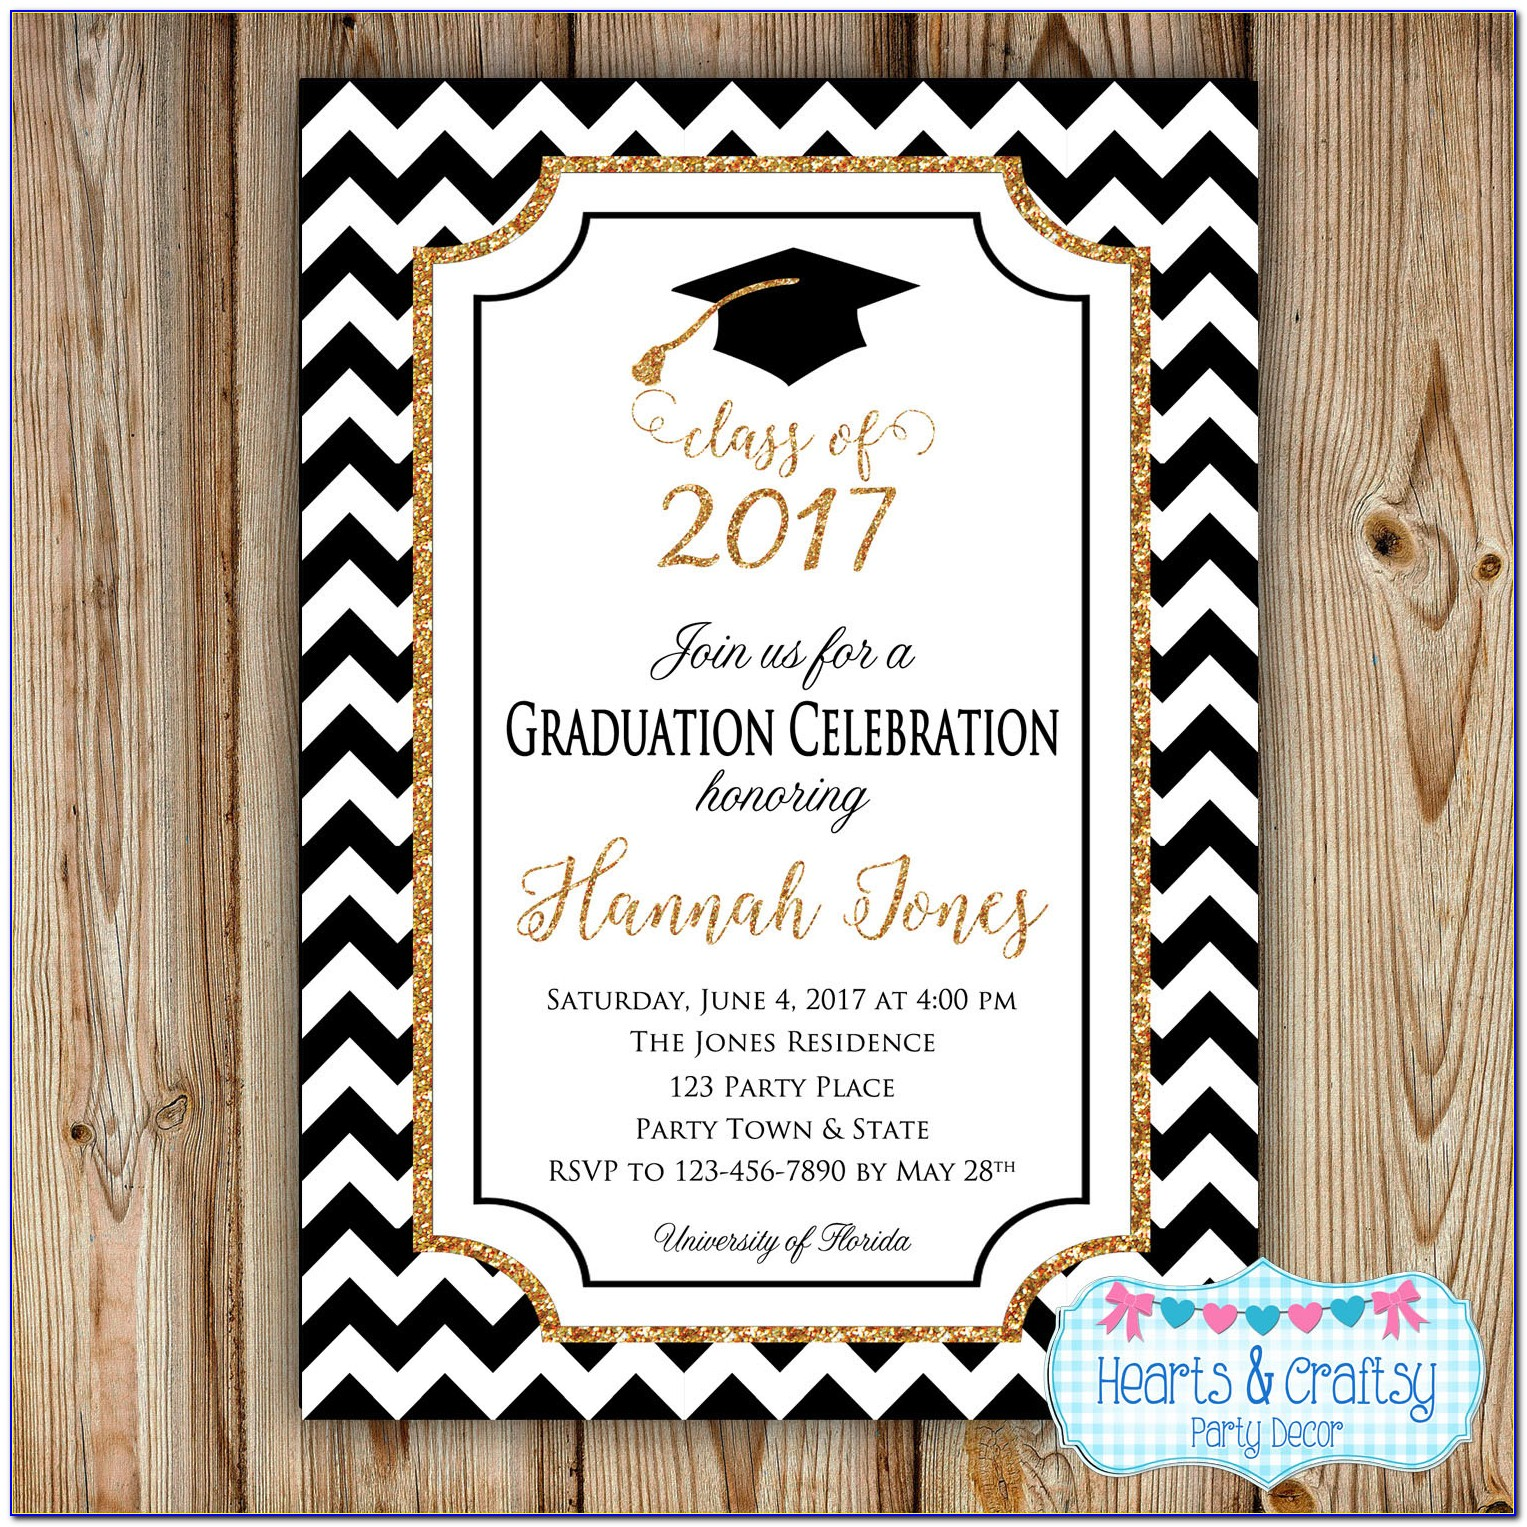 Graduation Party Invite Template Free